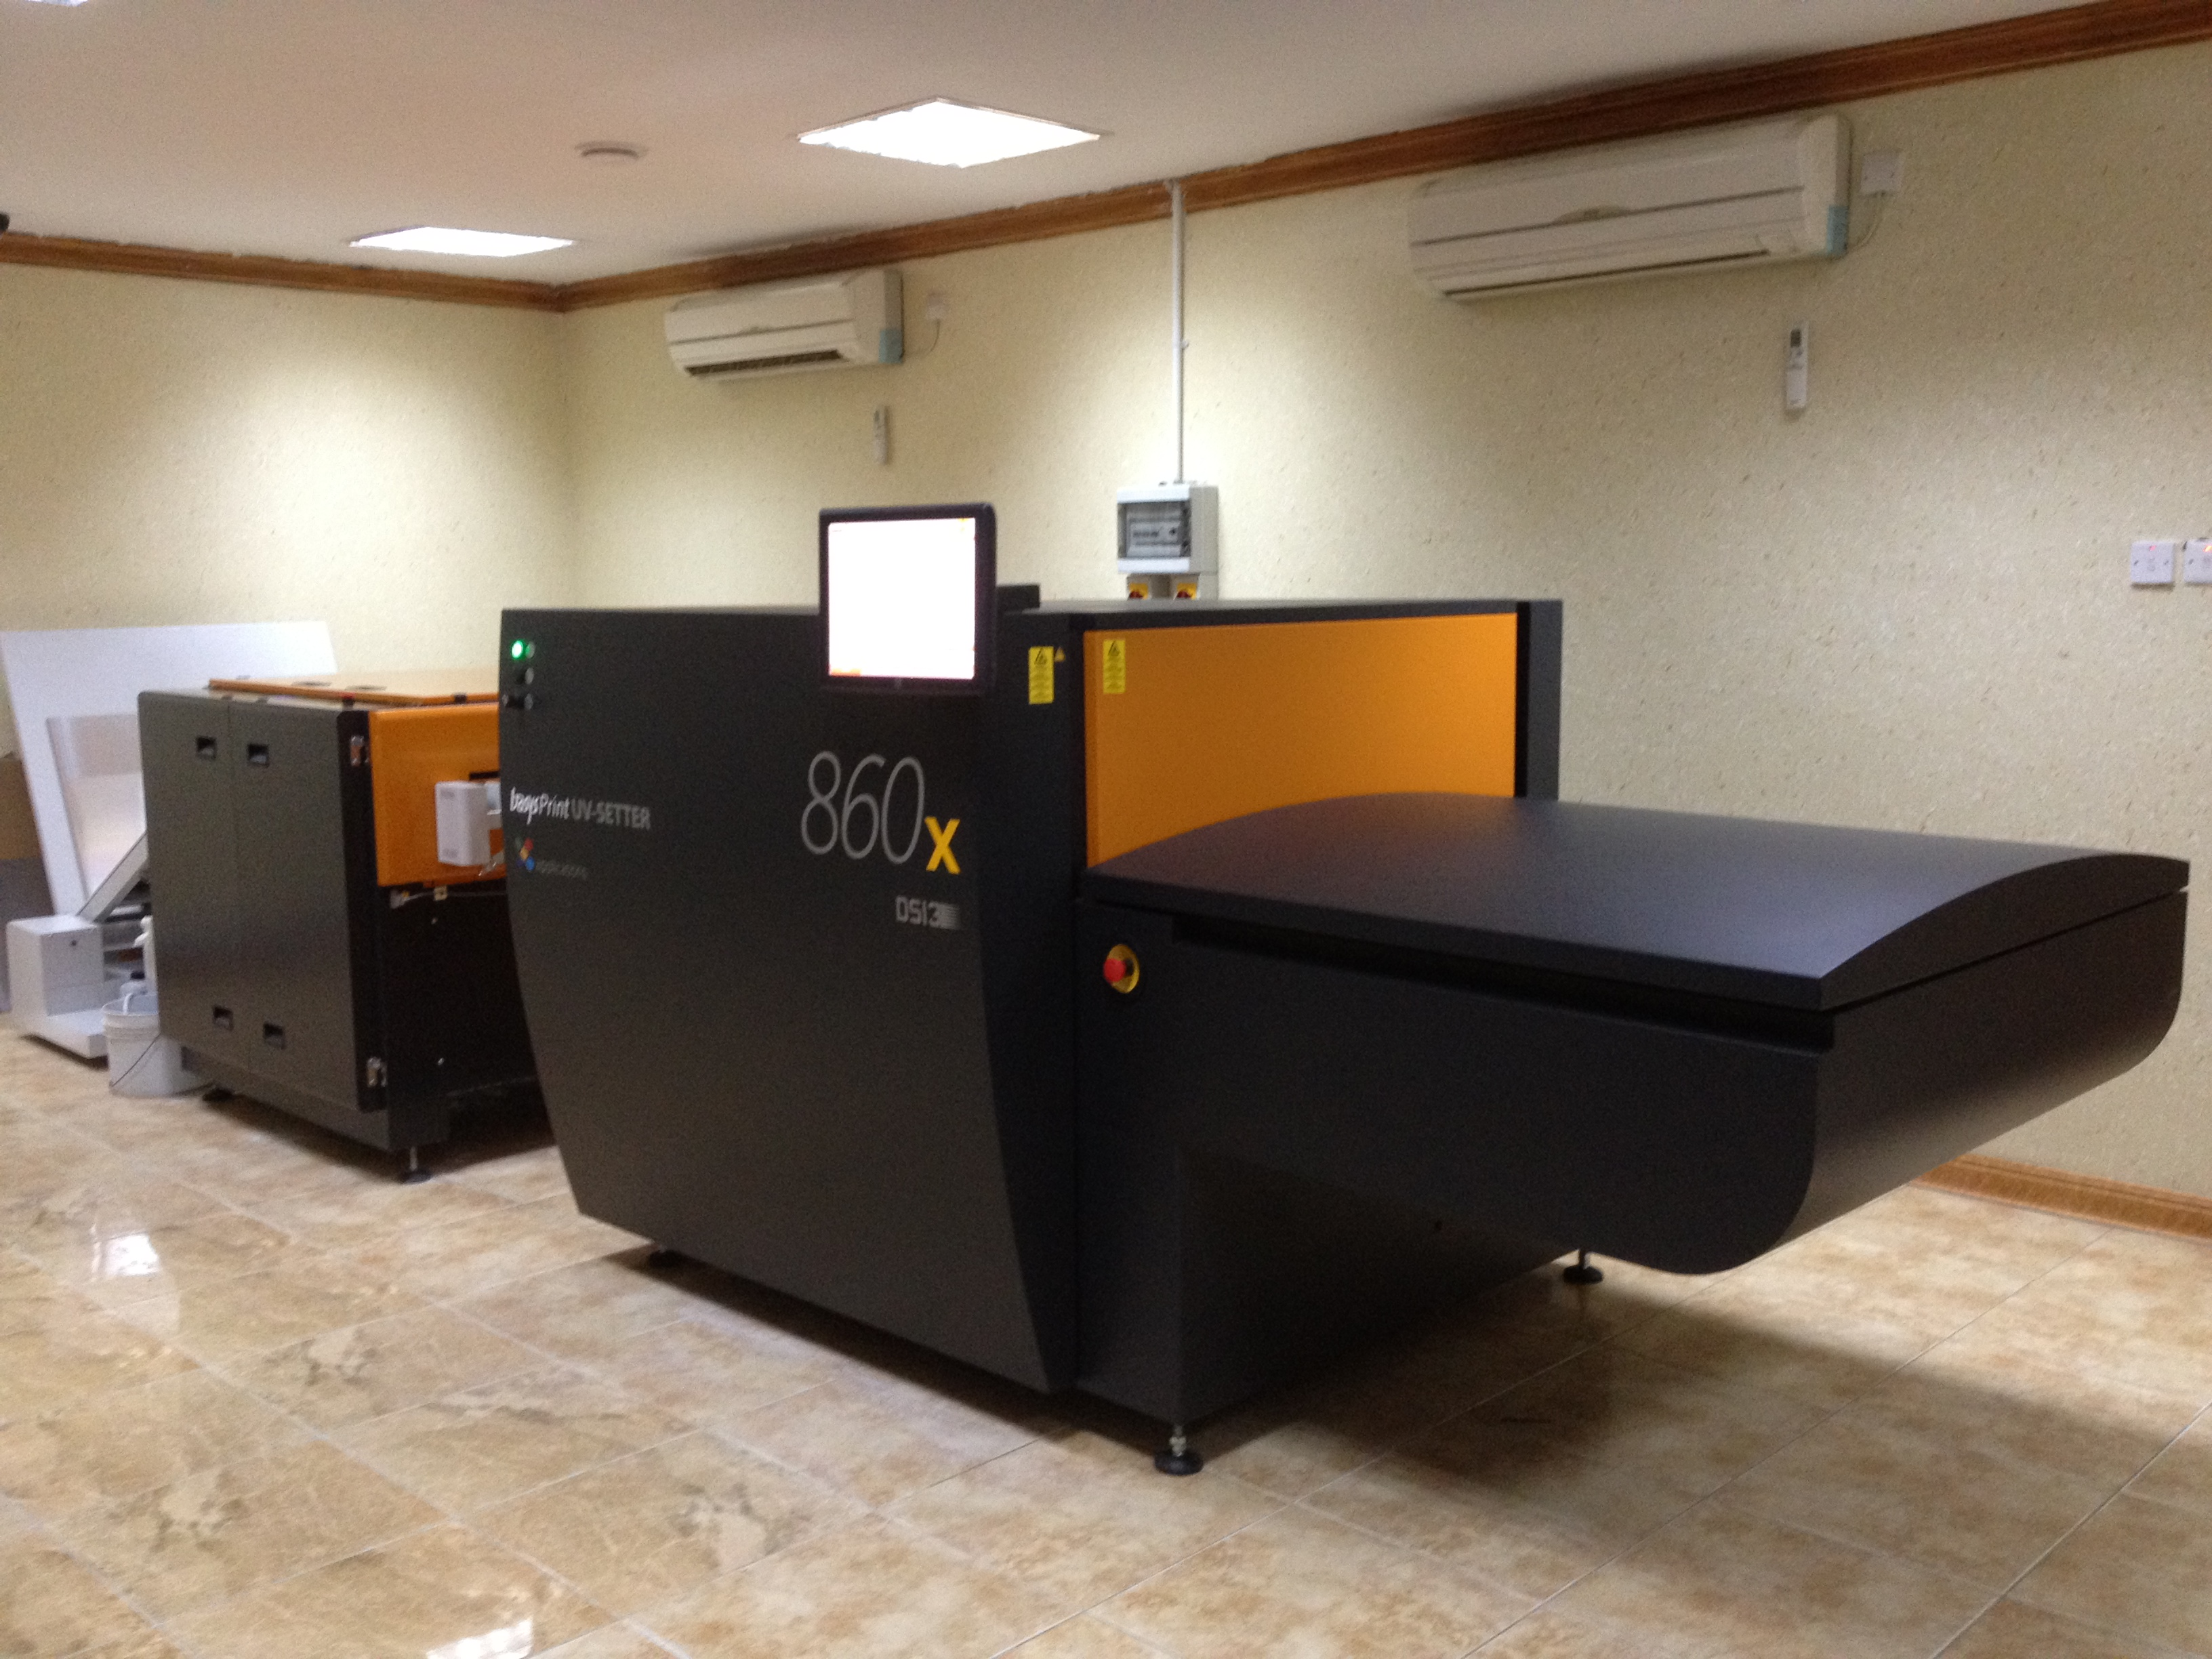 Global Graphics INT Kuwait: Announces installation of